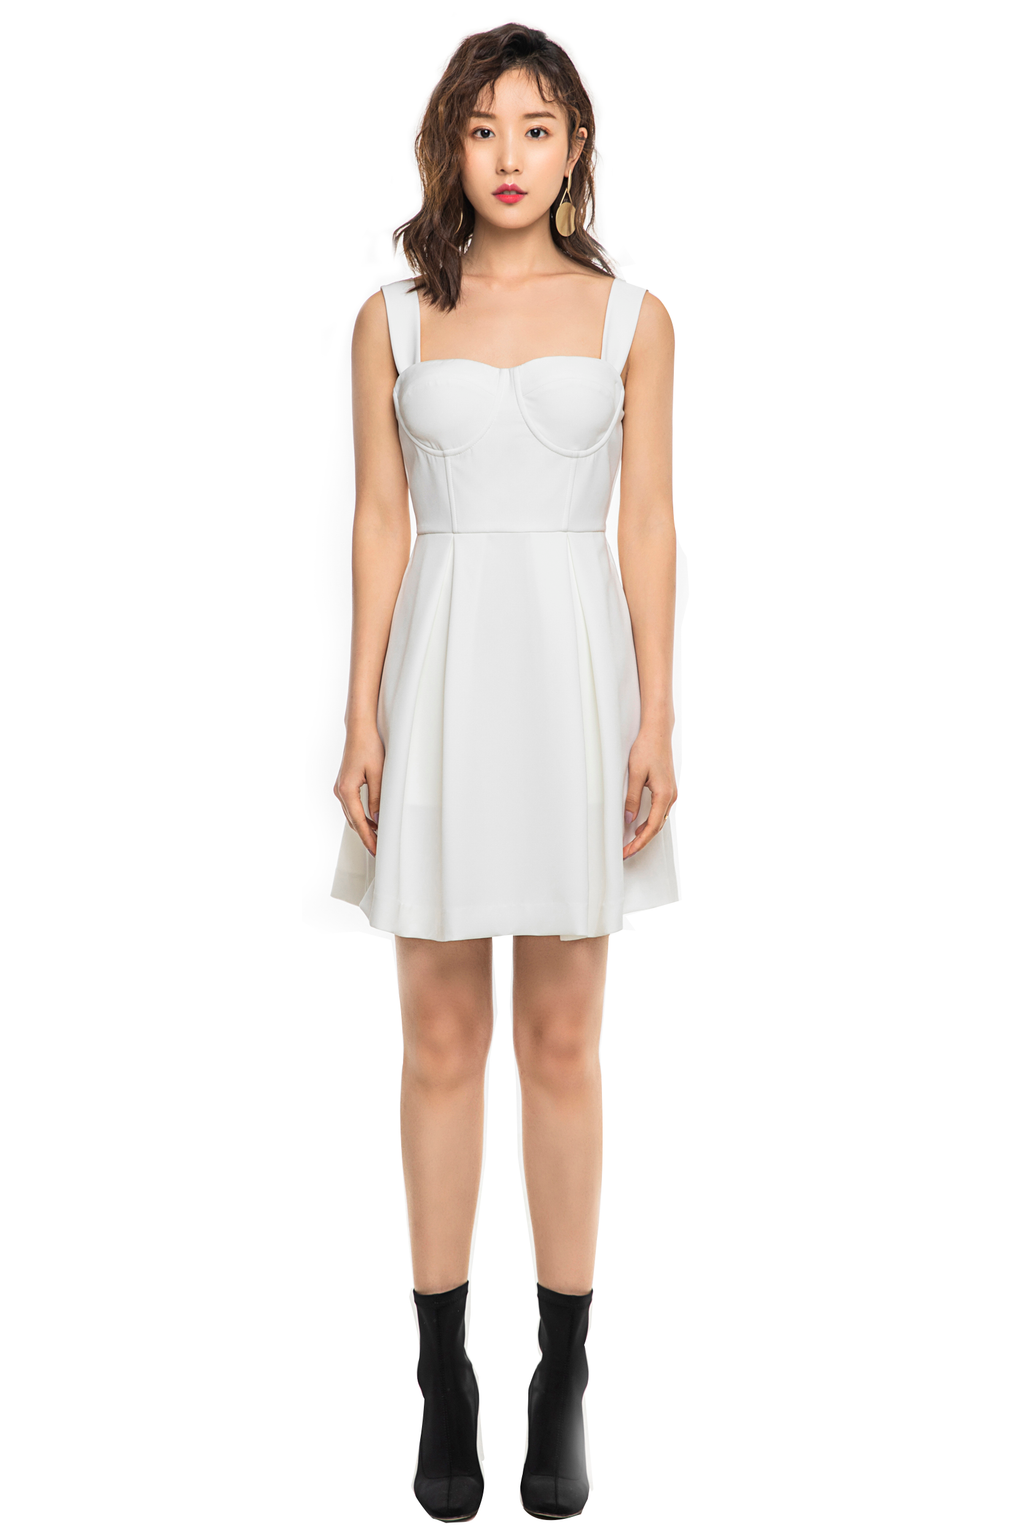 White Cup Sling Dress